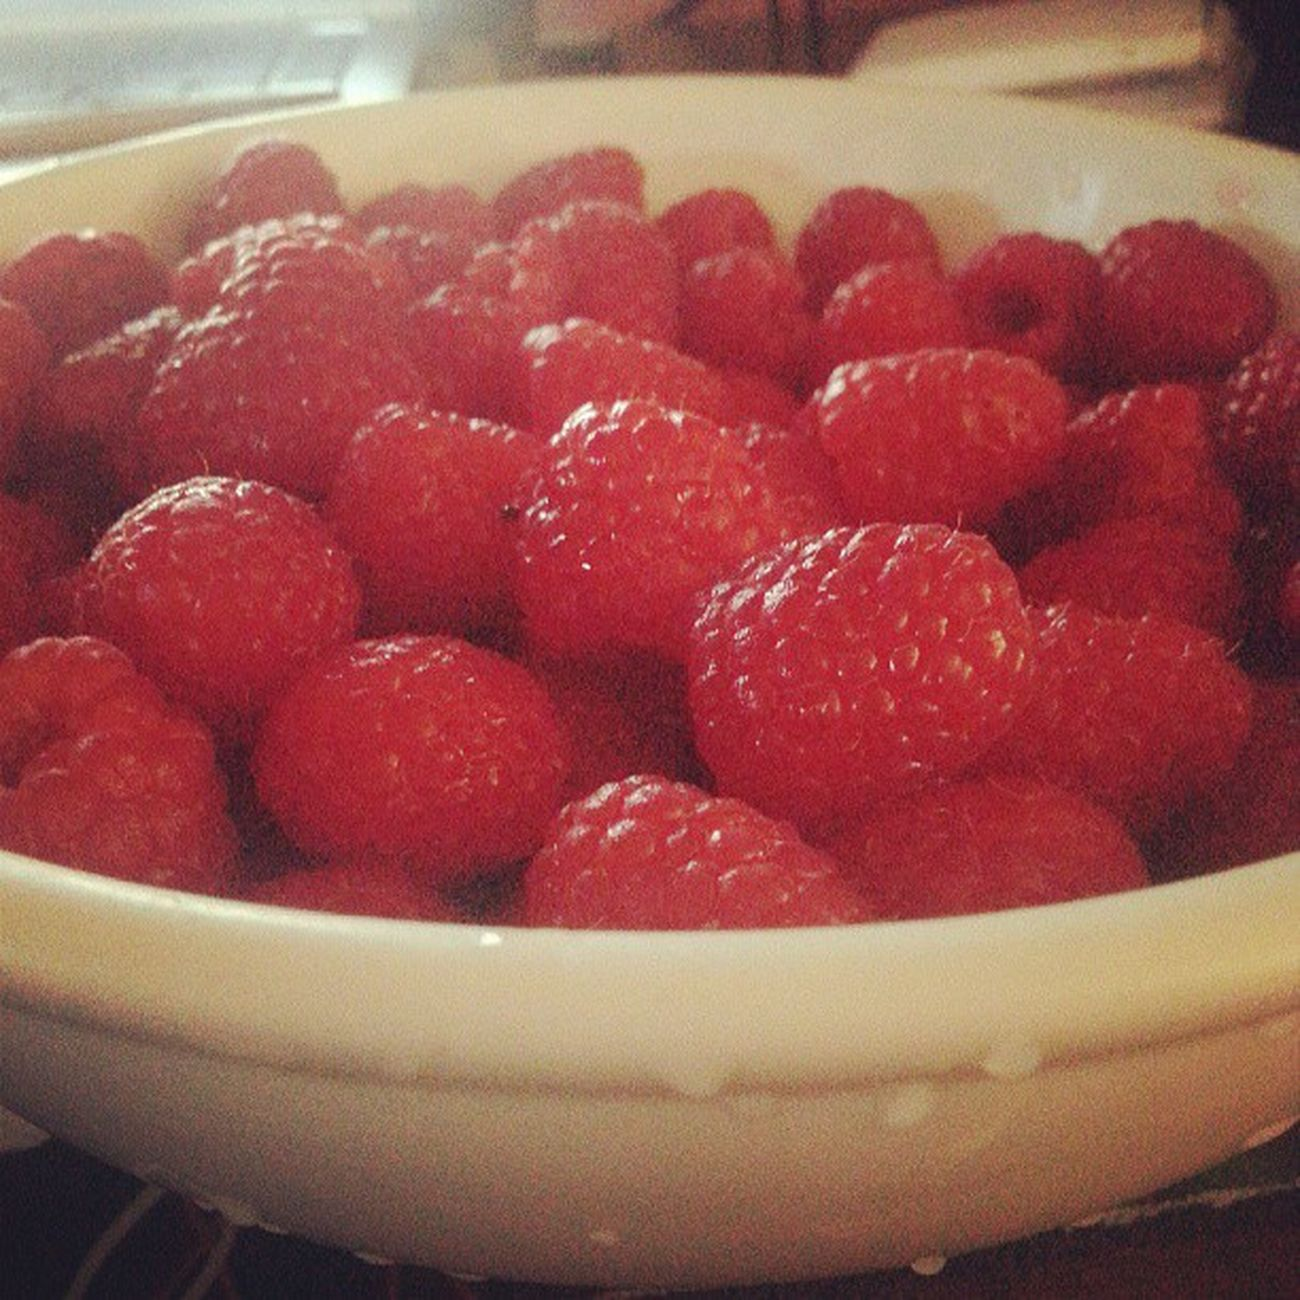 Second round Raspberries Fruitbowl Lunch Gamingsnack